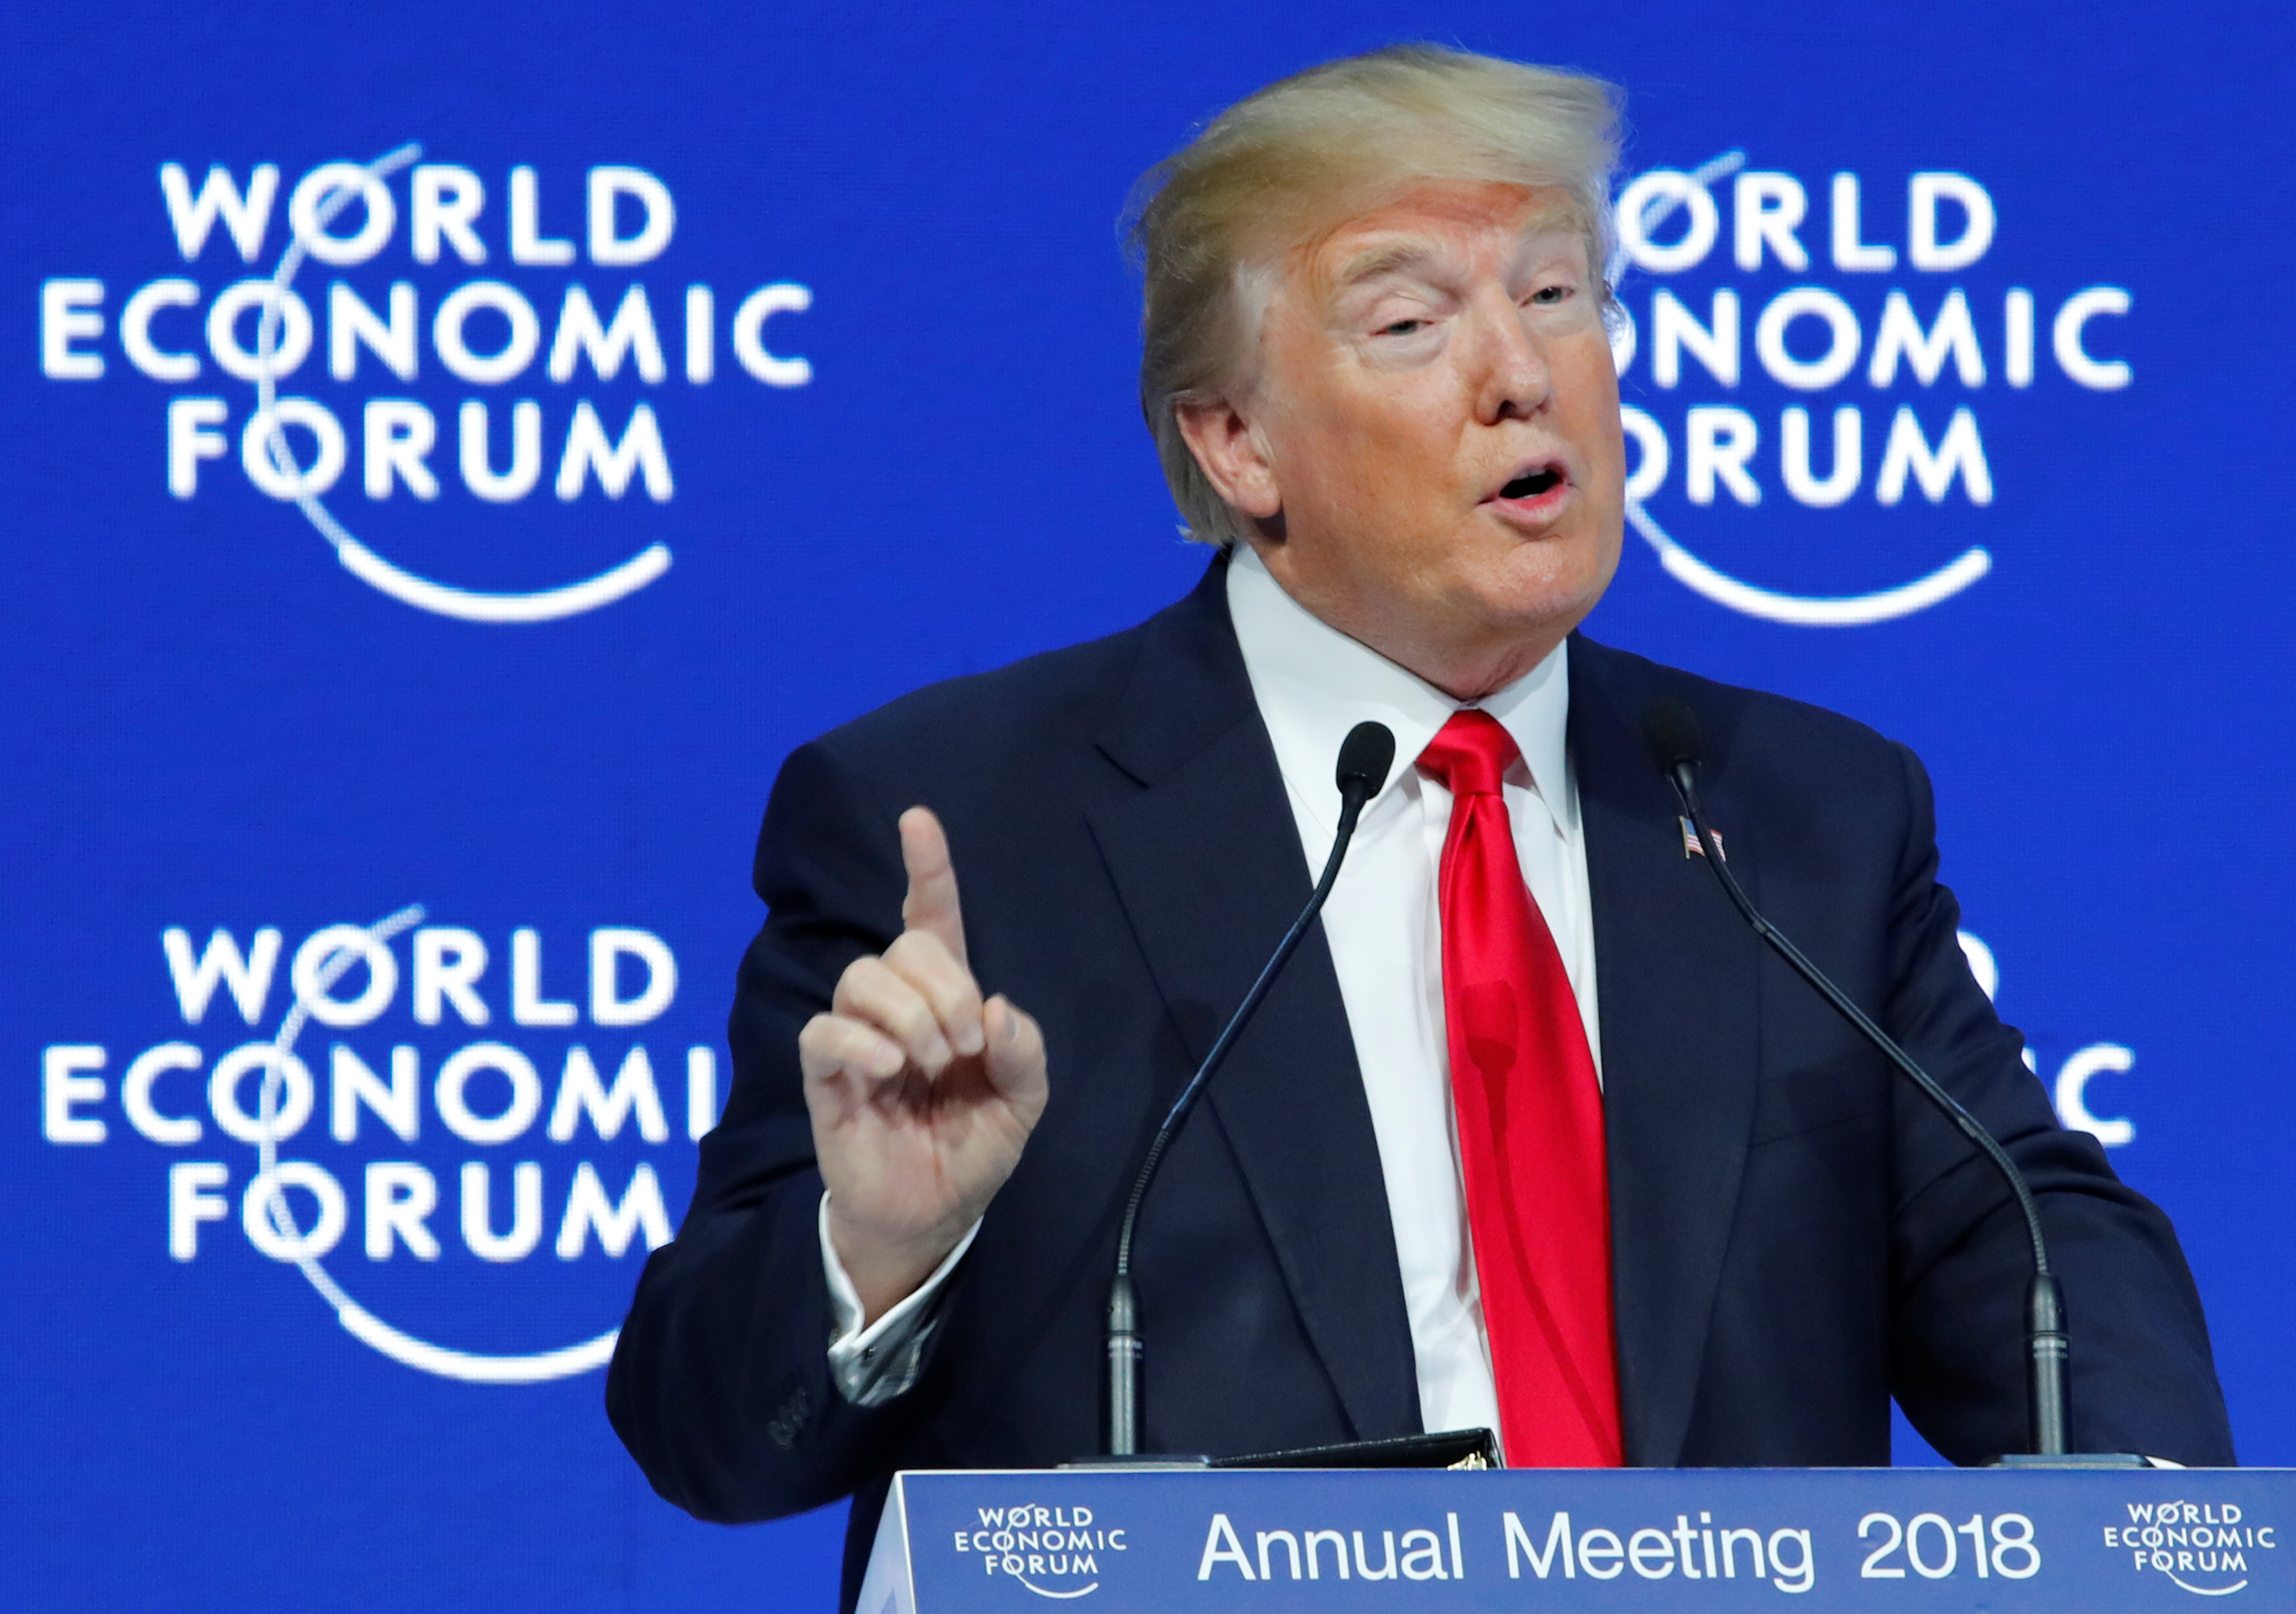 U.S. President Donald Trump gestures as he speaks during the World Economic Forum (WEF) annual meeting in Davos, Switzerland January 26, 2018. REUTERS/Denis Balibouse